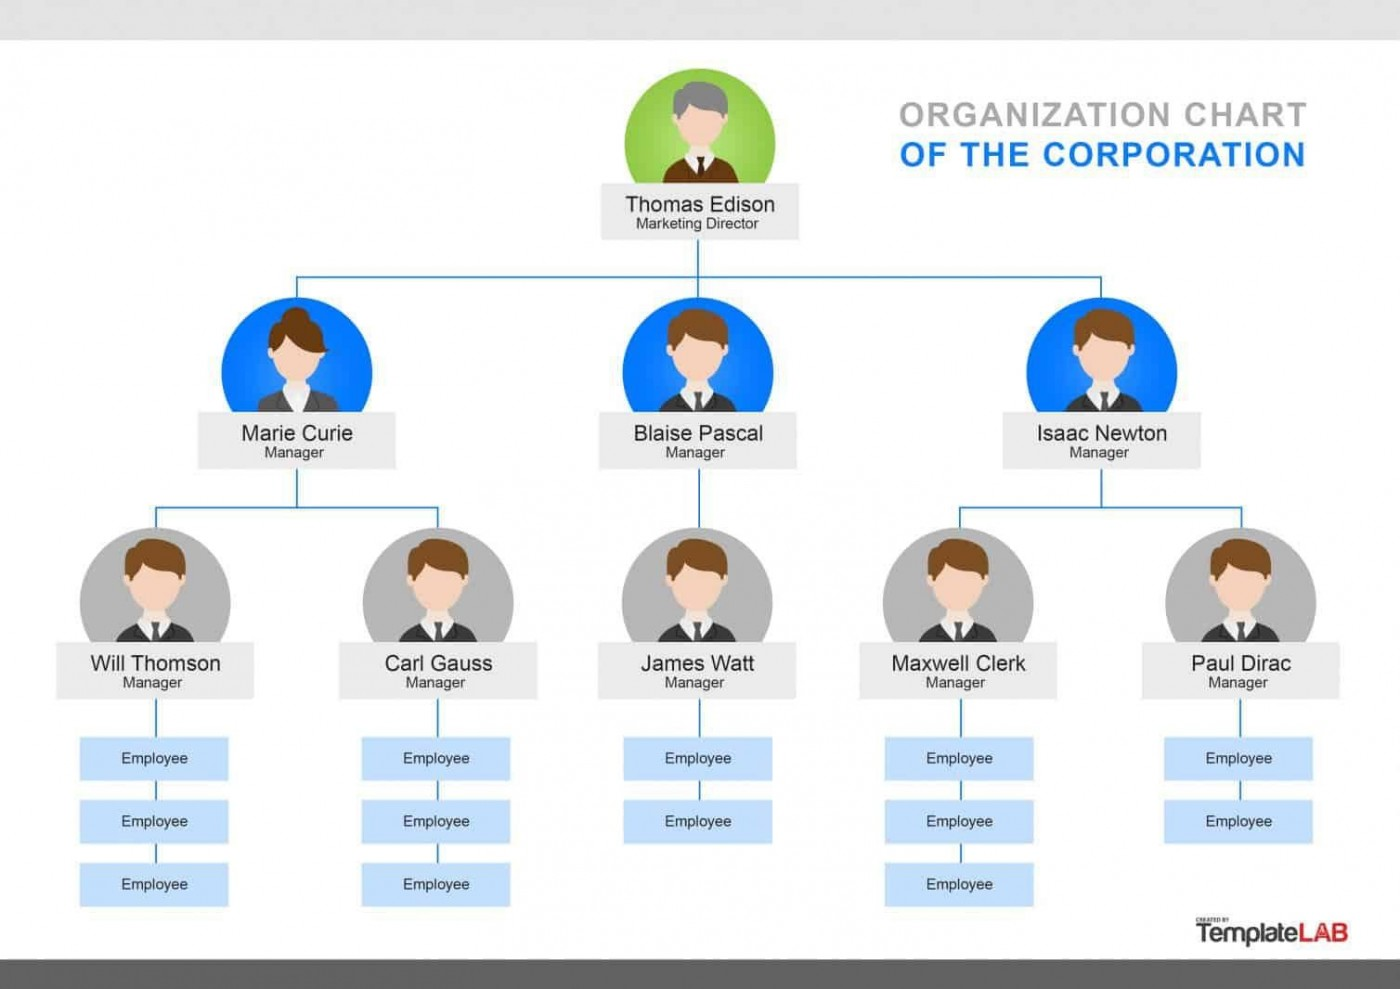 000 Singular Organizational Chart Template Word Concept  2010 2007 Free Download1400